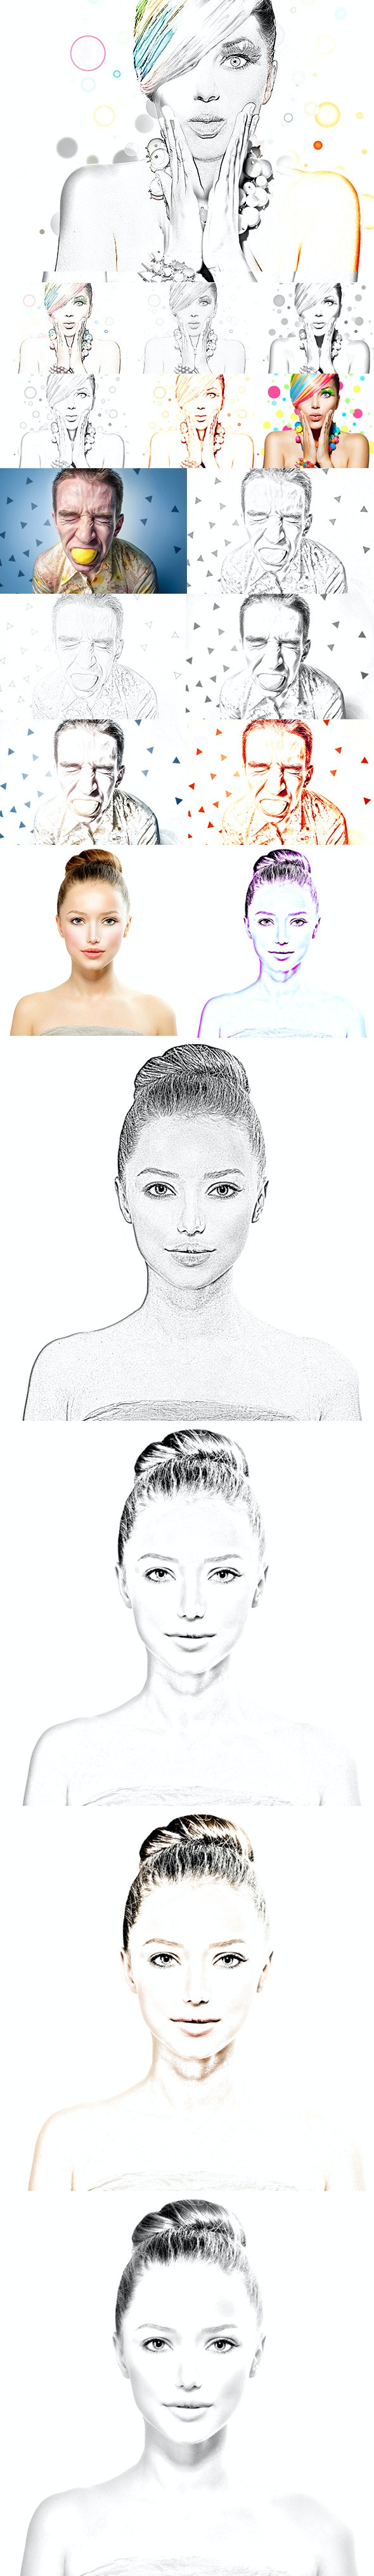 Sketch Action - Actions Photoshop